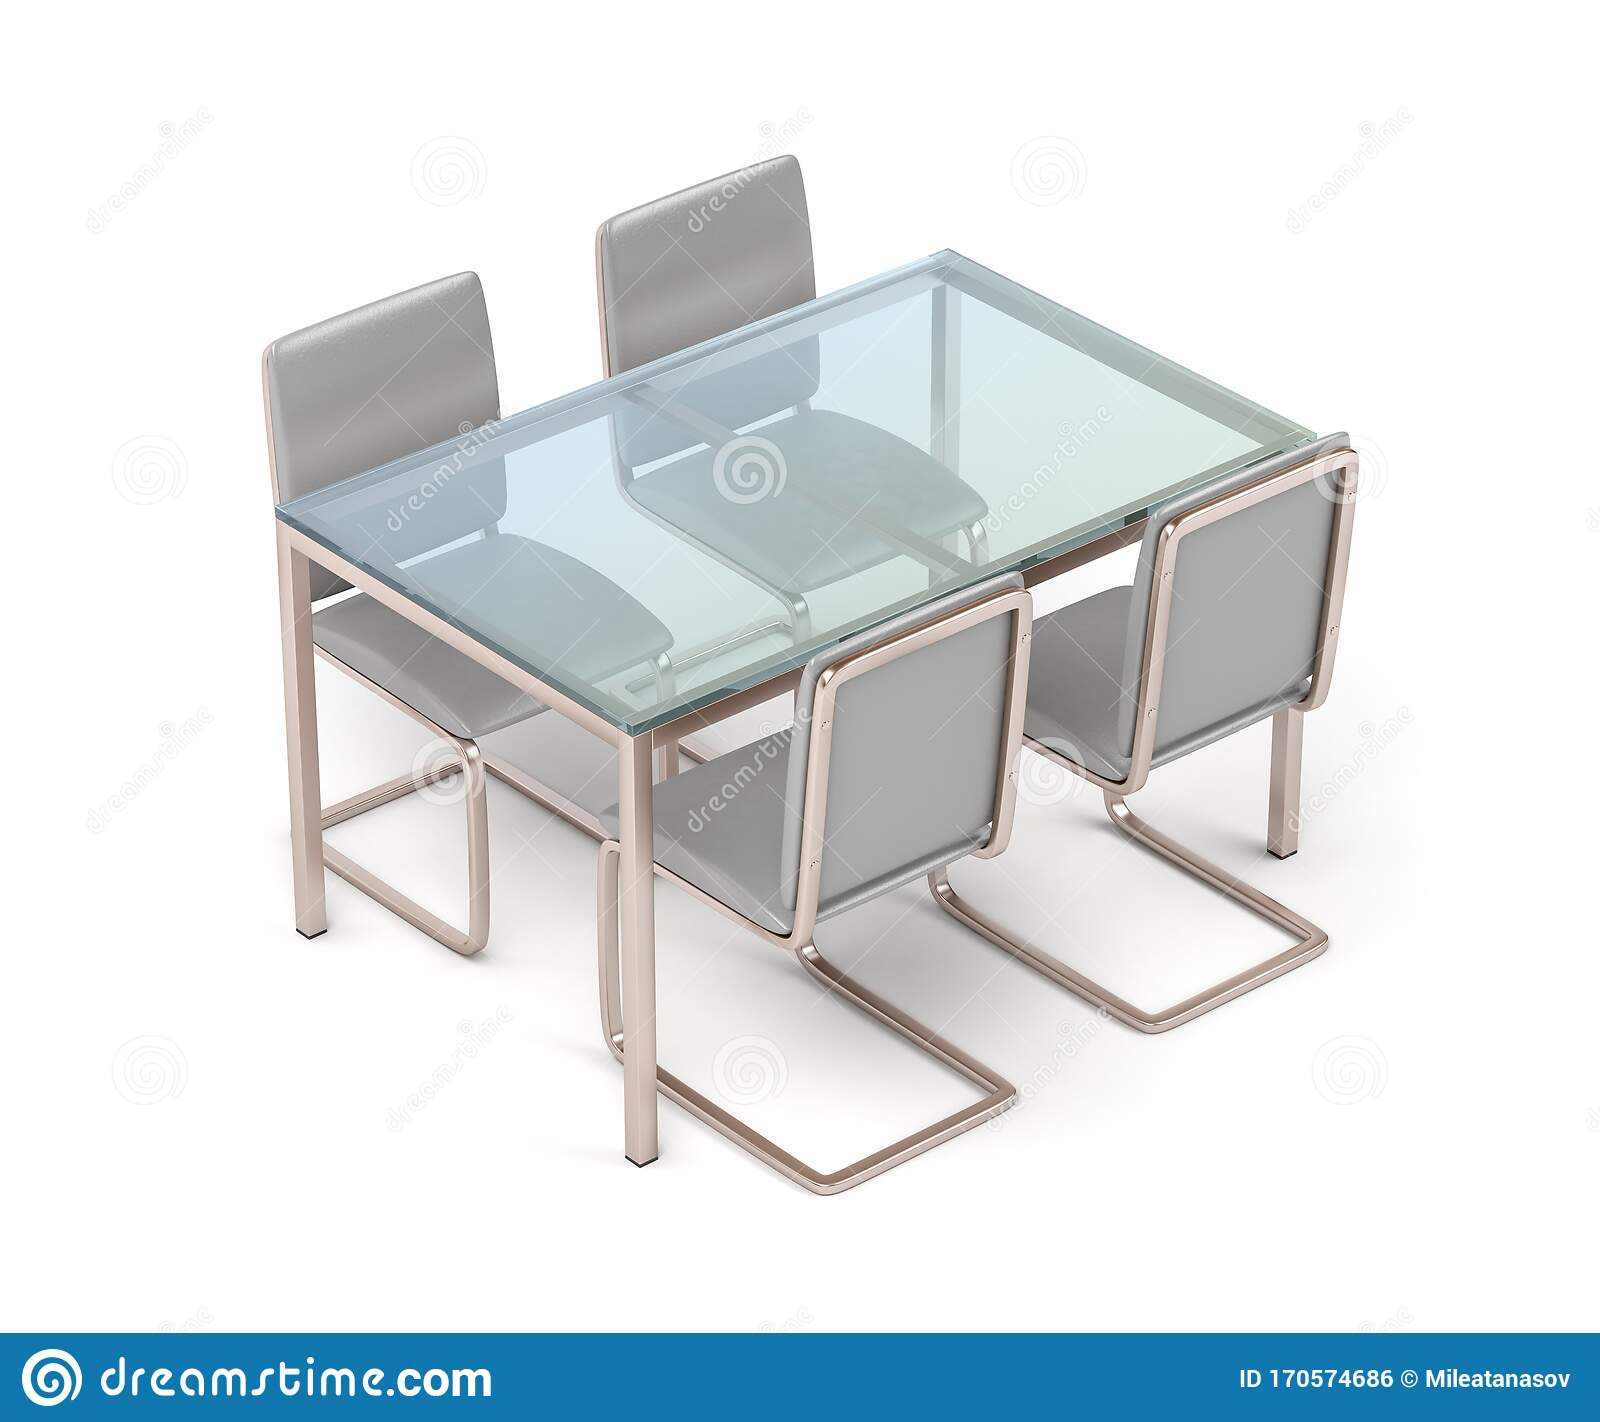 Picture of: Modern Dining Table And Chairs Stock Illustration Illustration Of Metal Seat 170574686